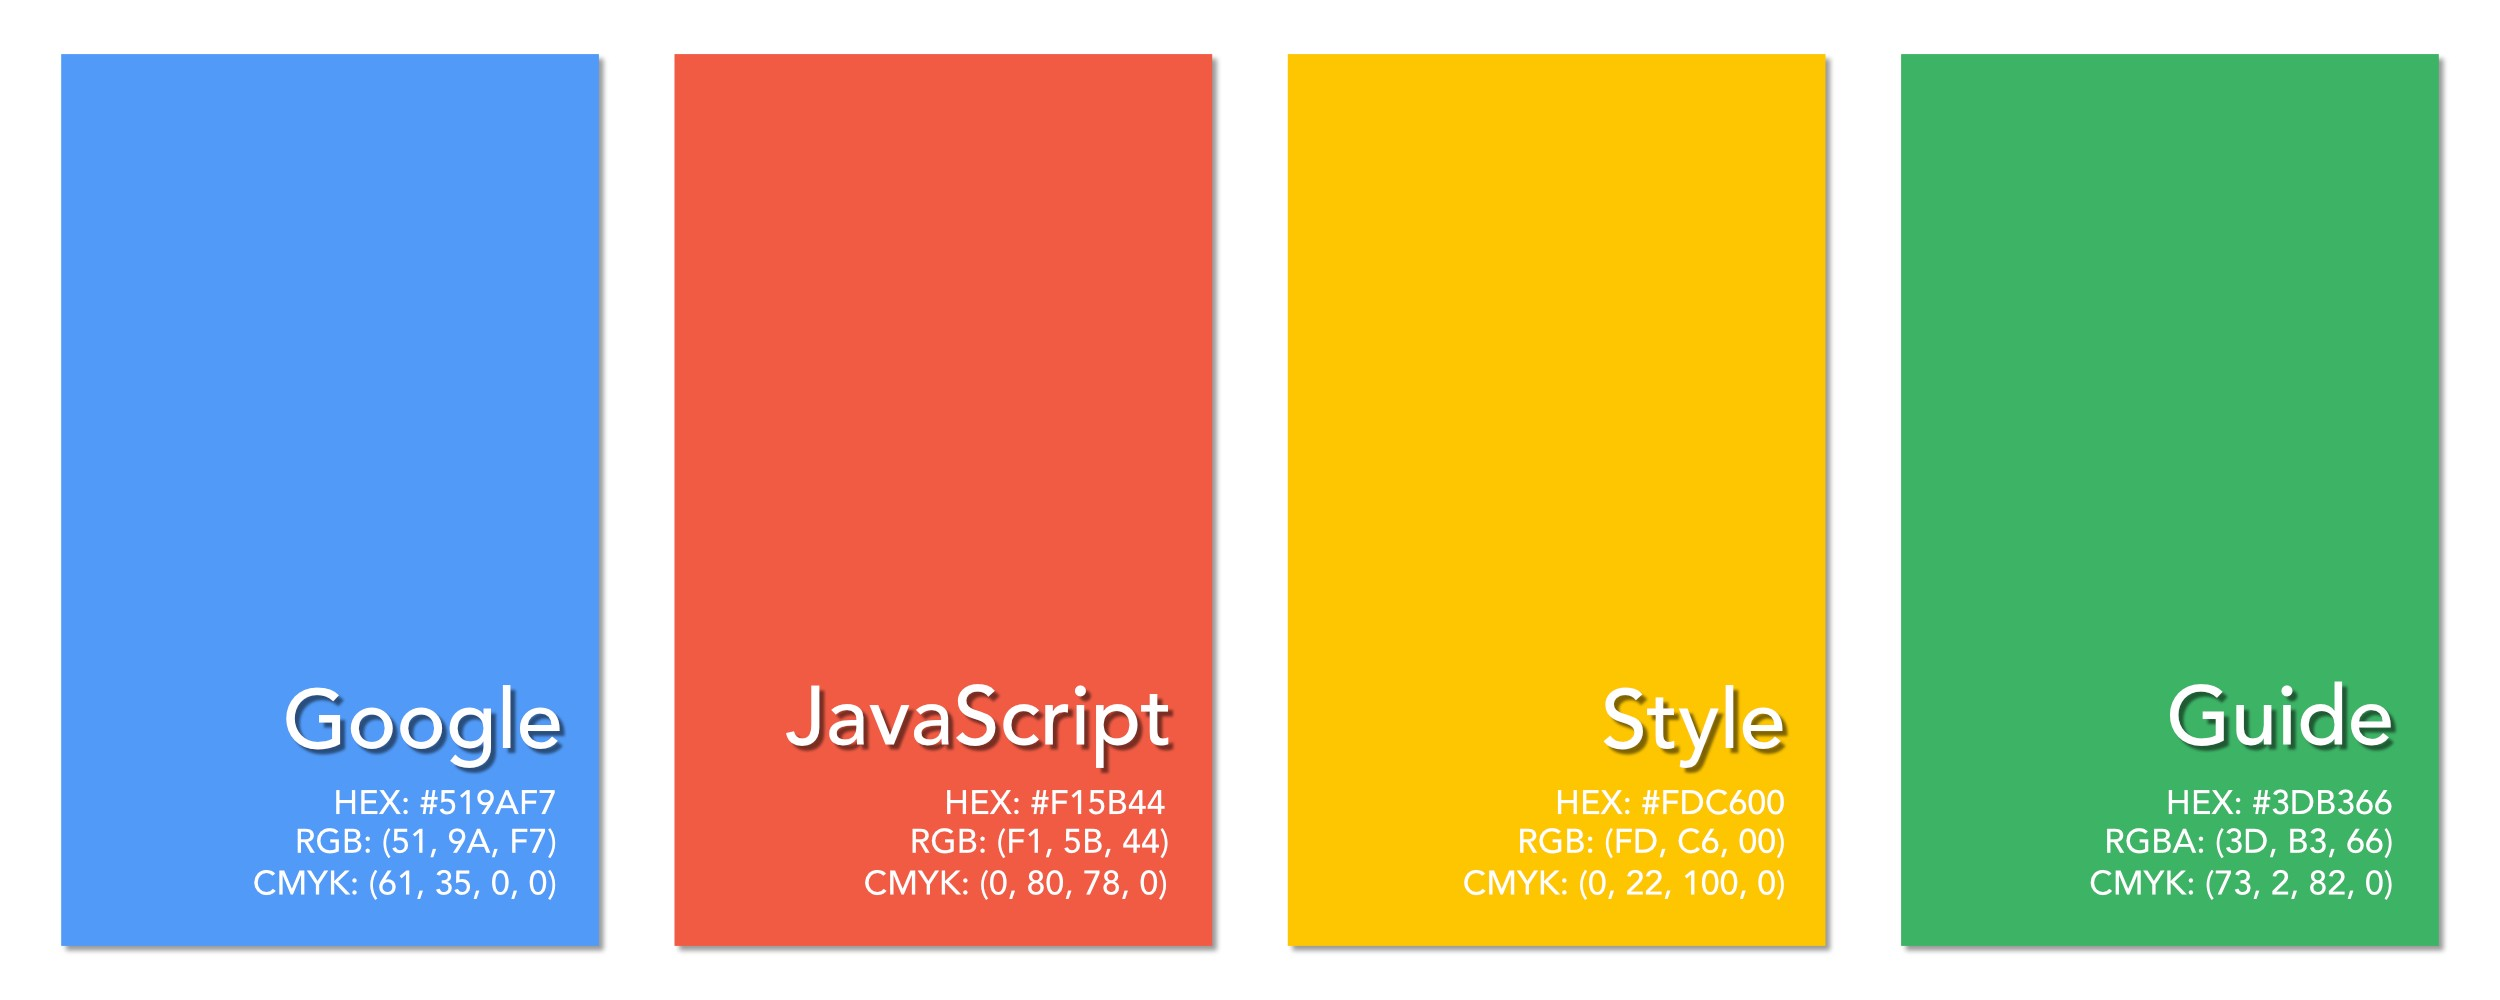 13 noteworthy points from googles javascript style guide